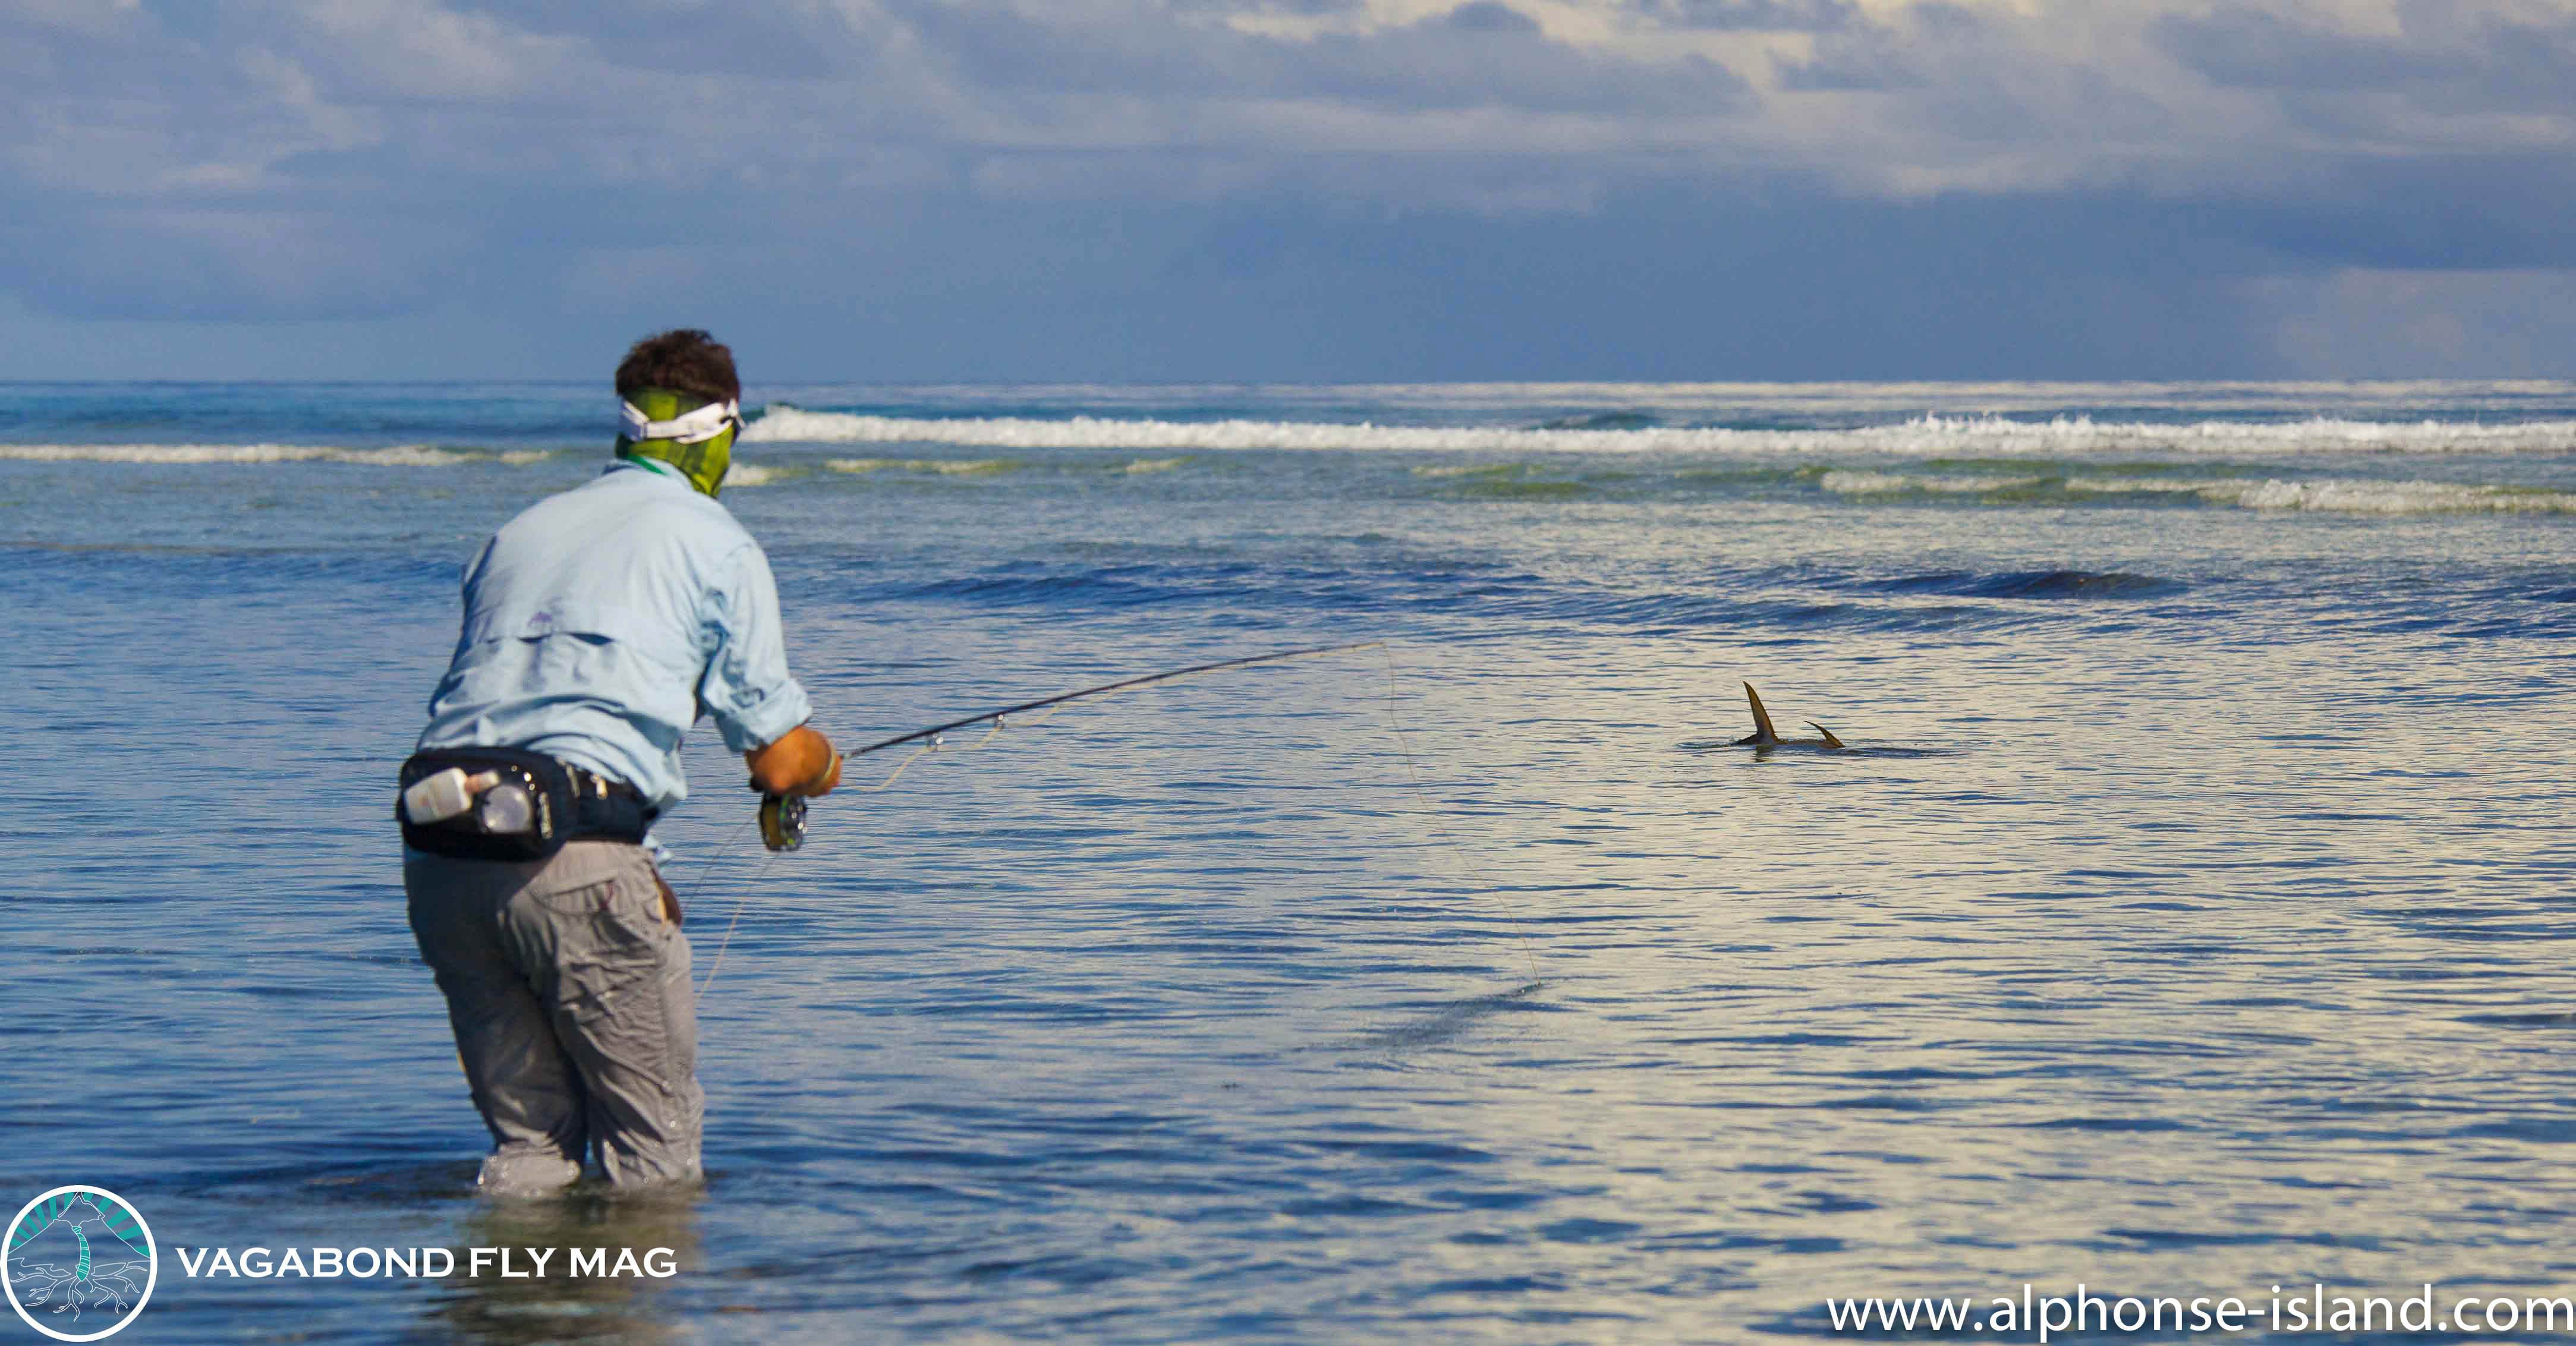 The holy grail by vagabond fly s colin campbell vagabond for Permit fly fishing